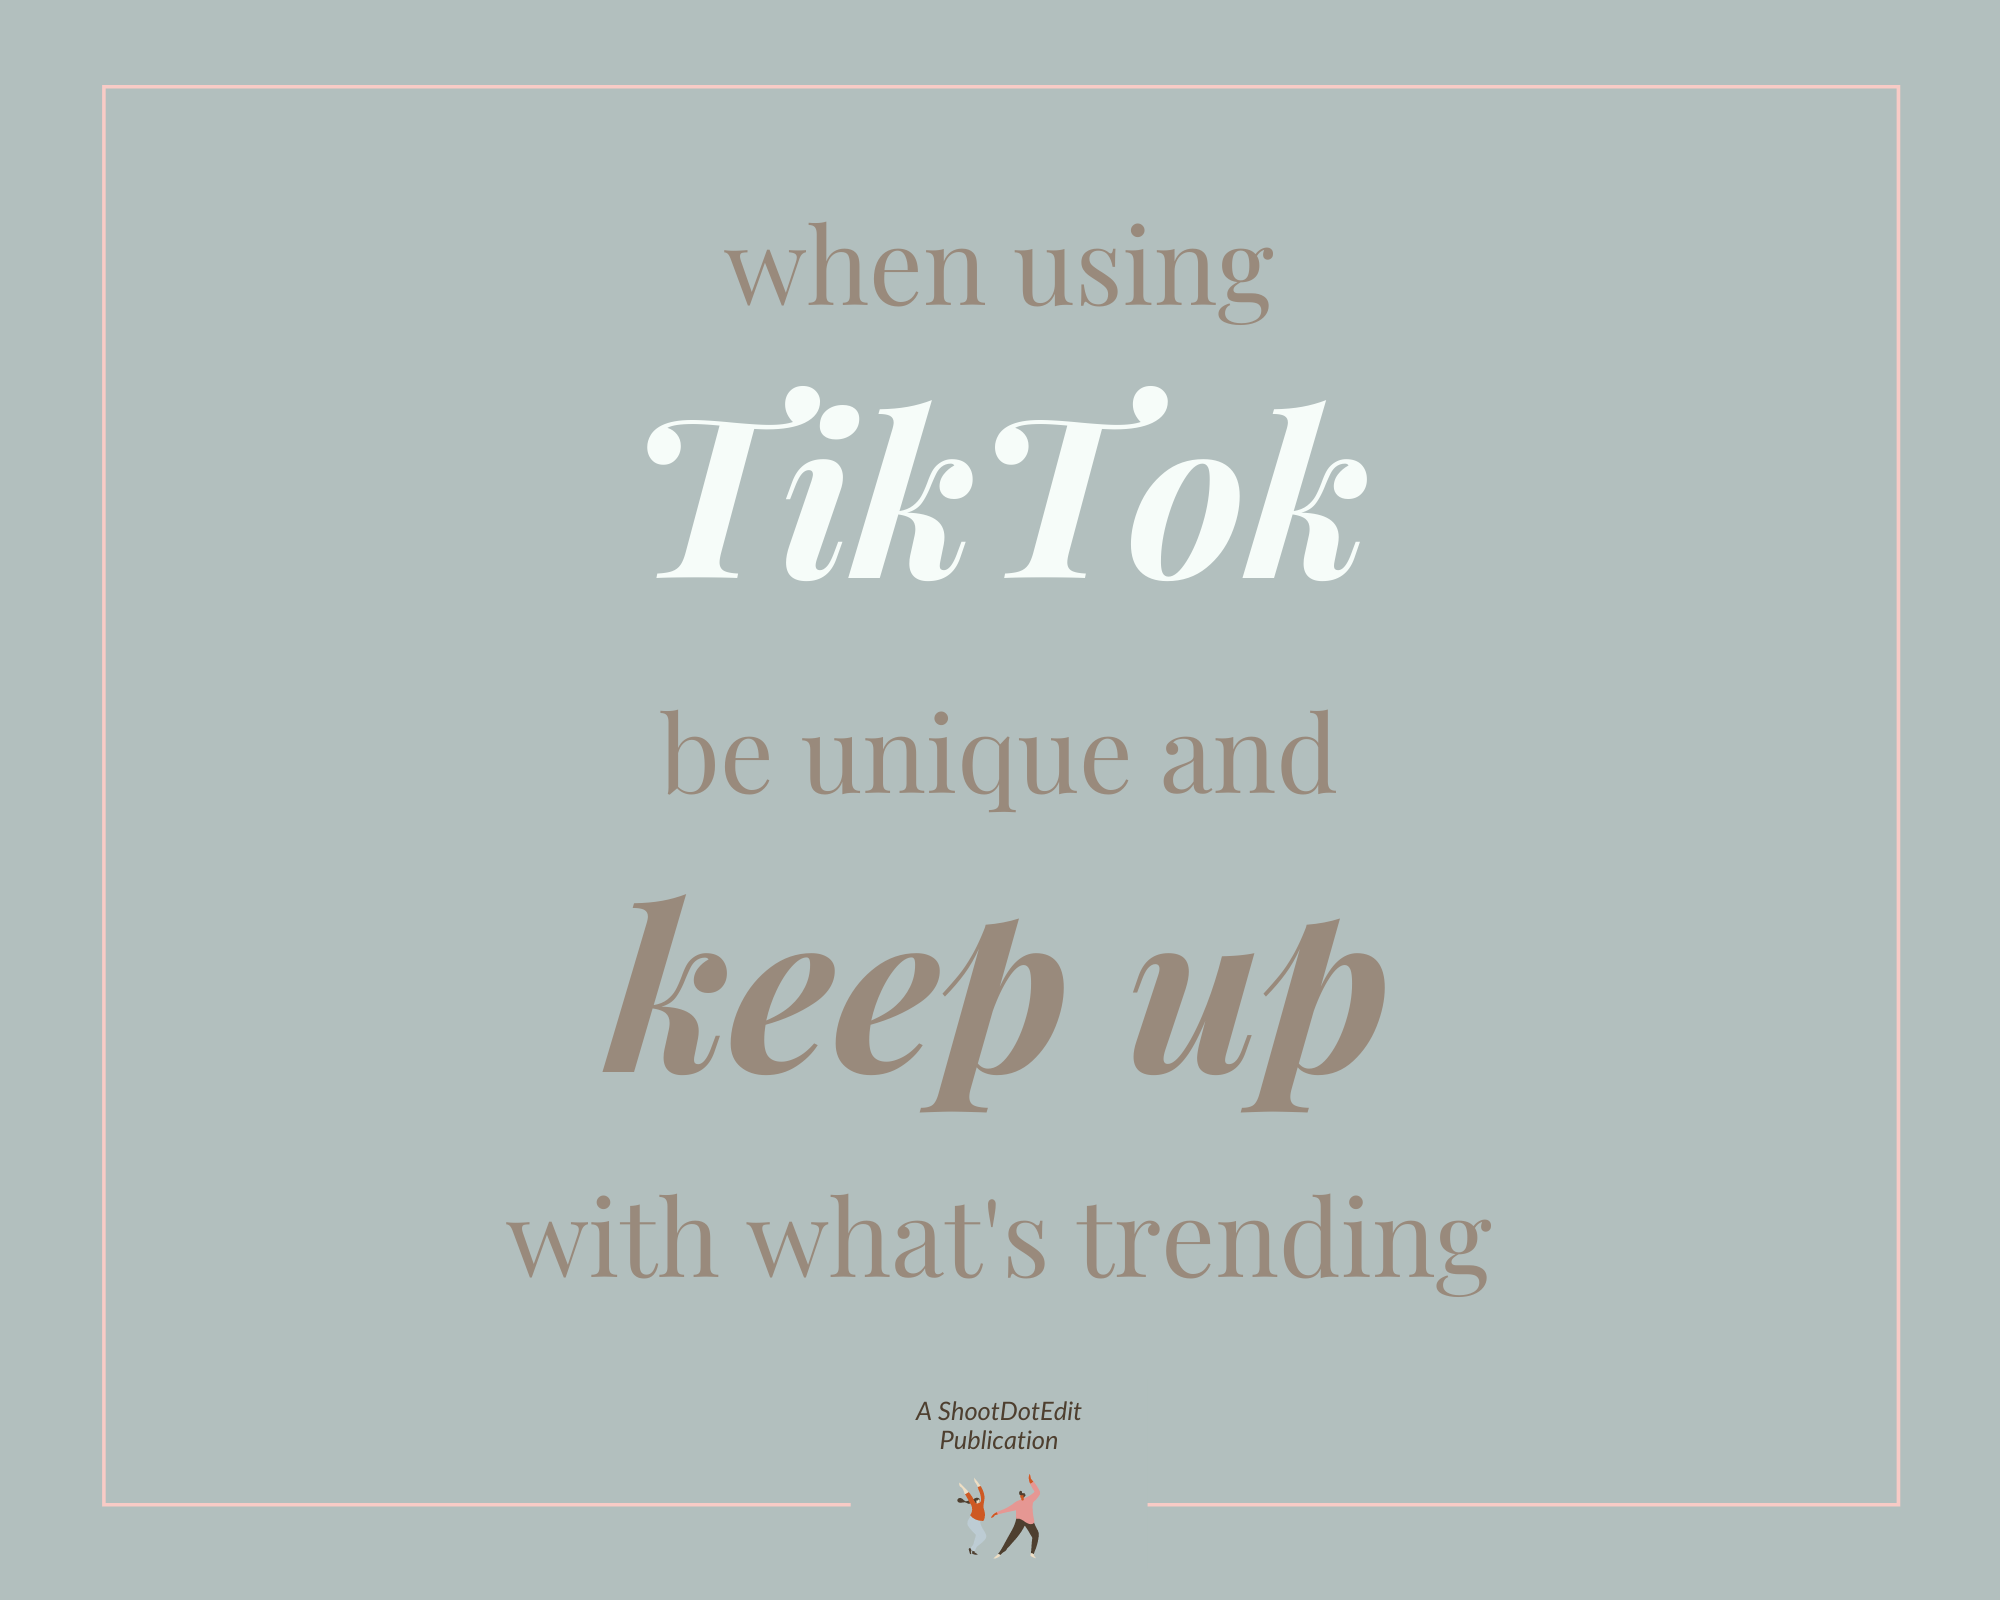 Infographic stating when using TikTok be unique and keep up with what is trending